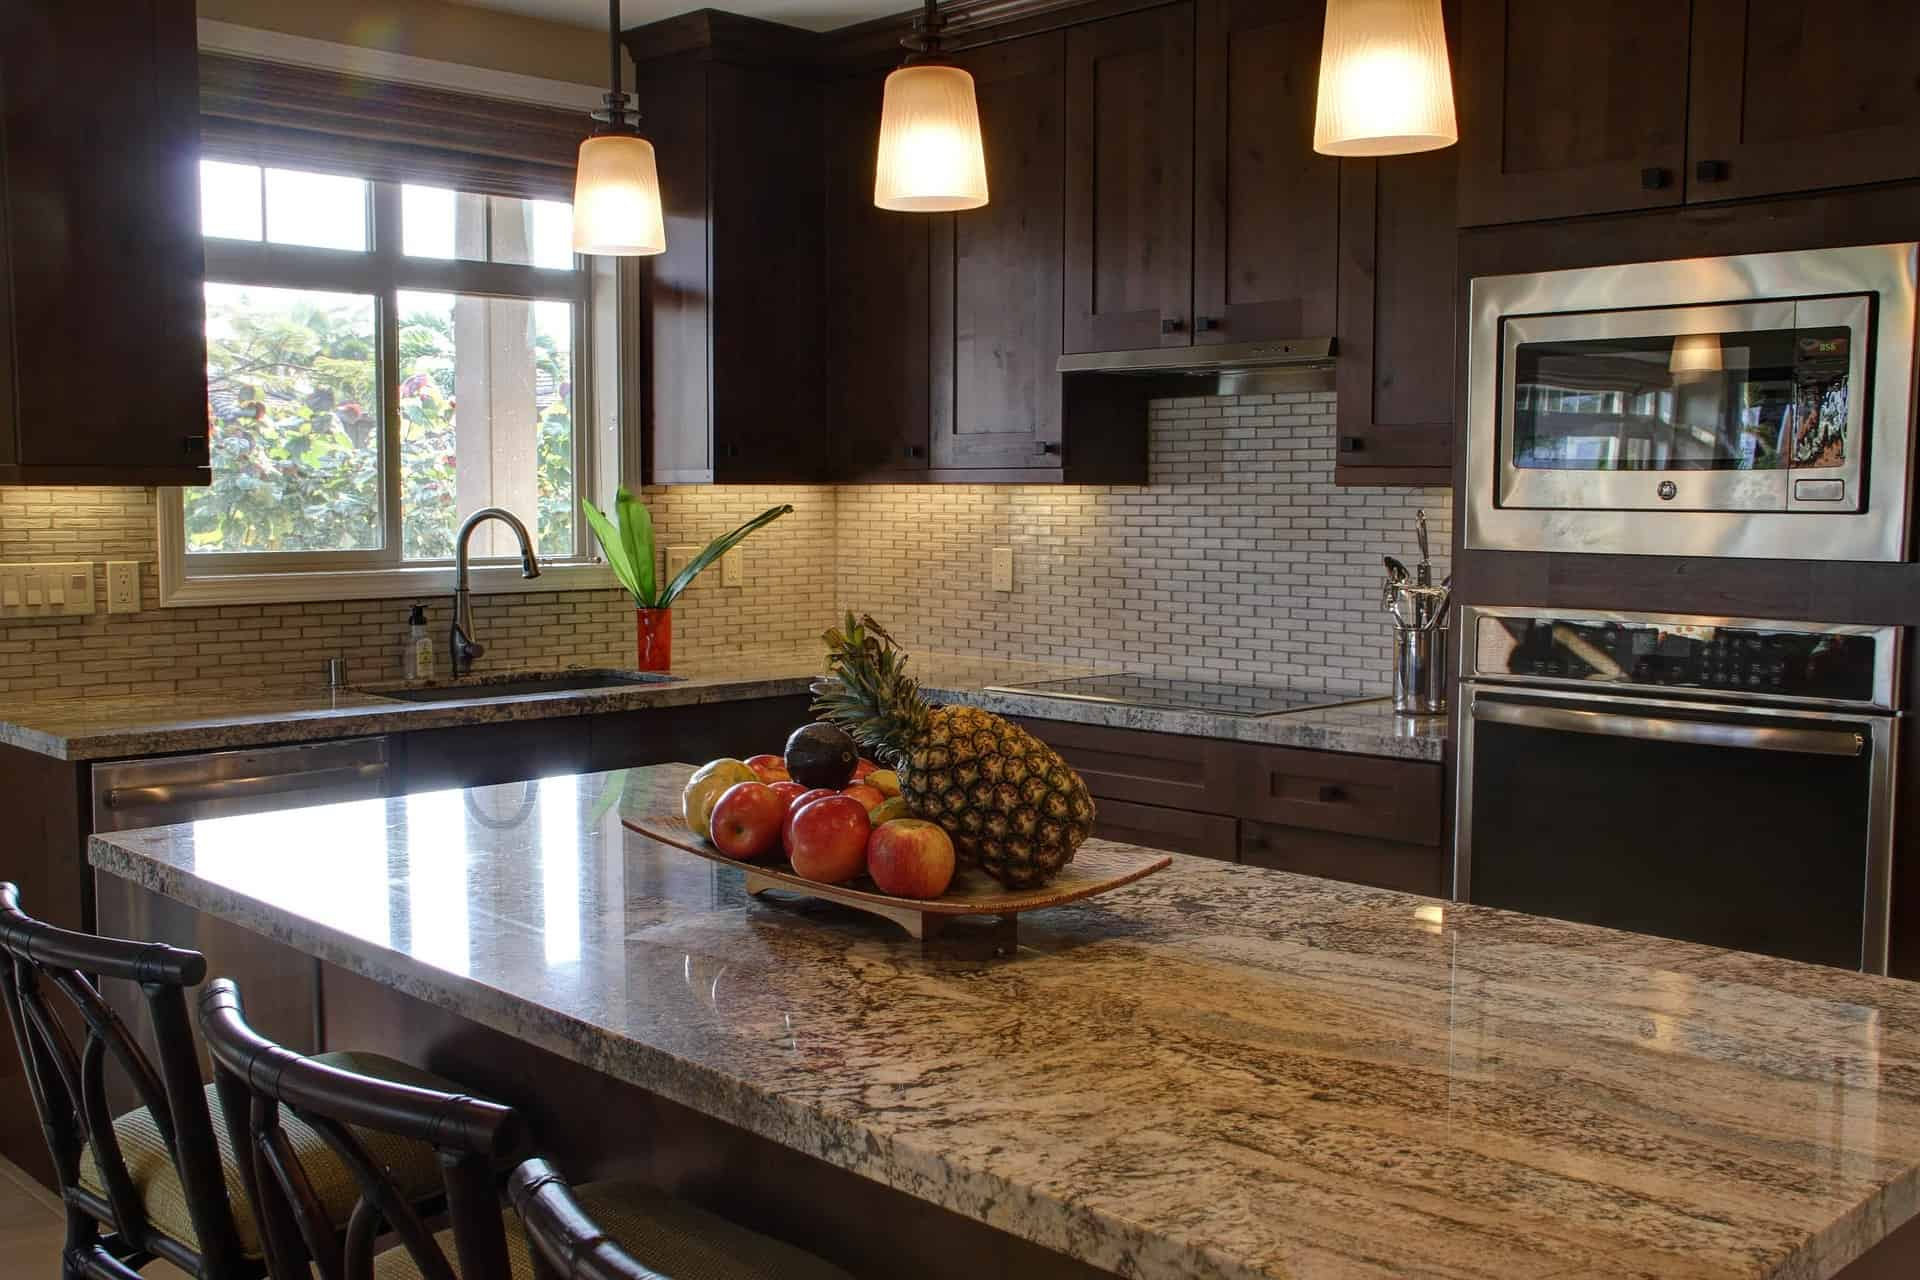 Keeping Kitchen Counters Clear - The Organized Mom on kitchen counter design ideas, kitchen counter lighting ideas, kitchen counter accessories ideas, kitchen counter remodeling ideas, kitchen counter decor ideas, kitchen counter seating ideas, kitchen counter storage ideas, kitchen counter color ideas,